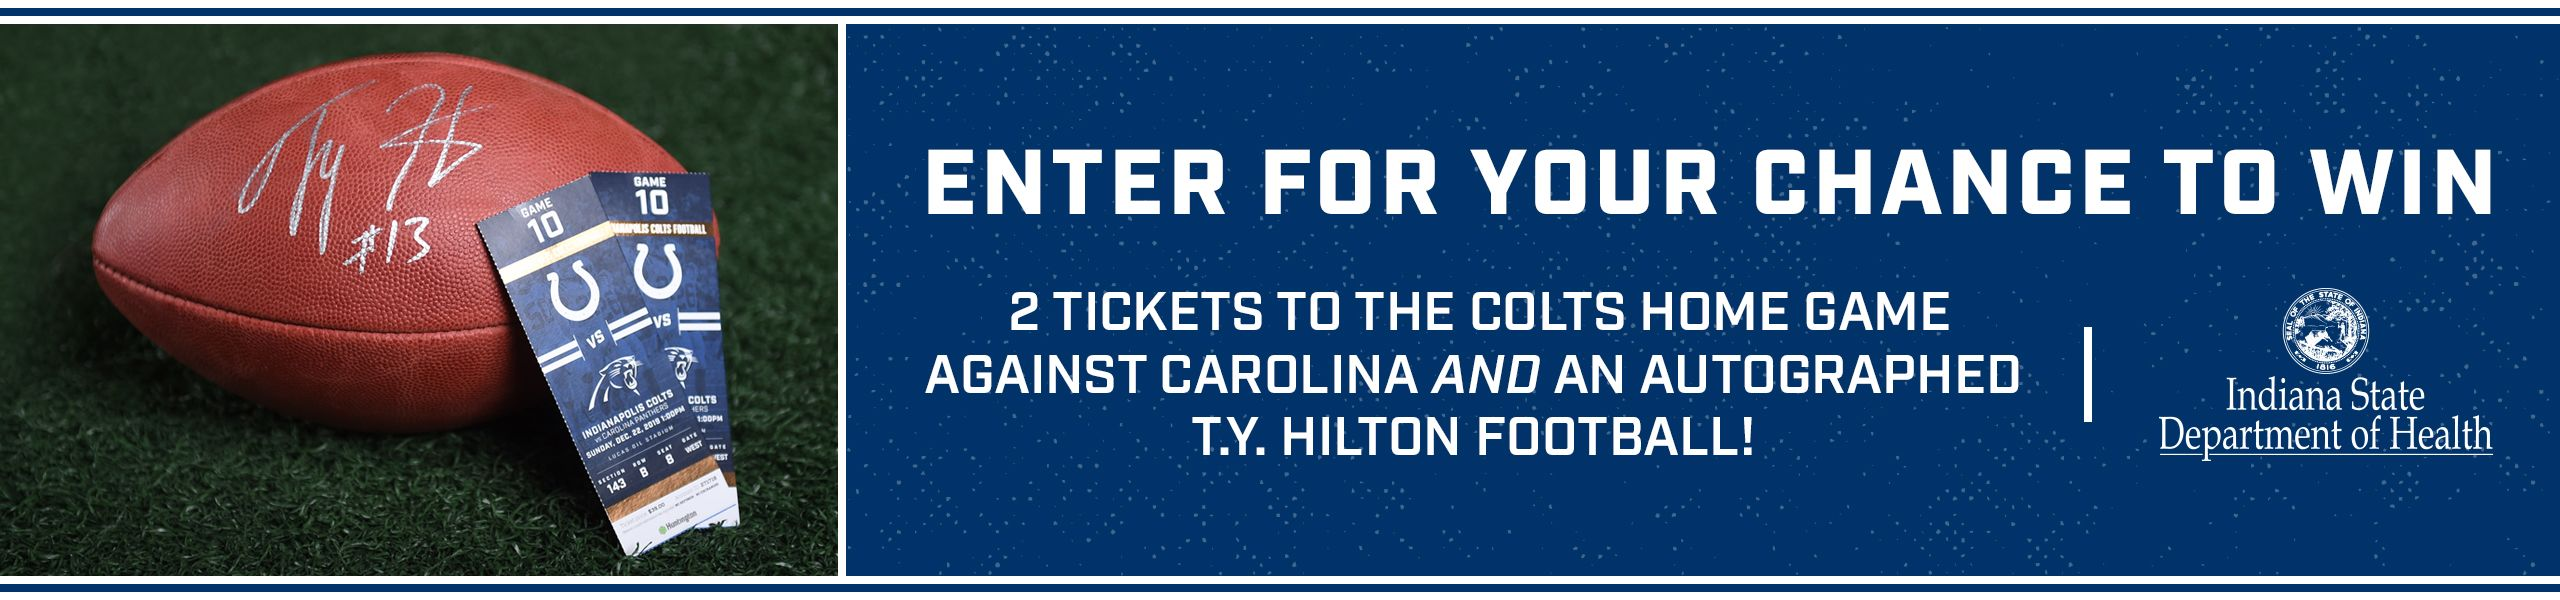 Enter for your chance to win. 2 tickets to the Colts home game against Caroline and an autographed T.Y. Hilton Football! Indiana State Department Of Health